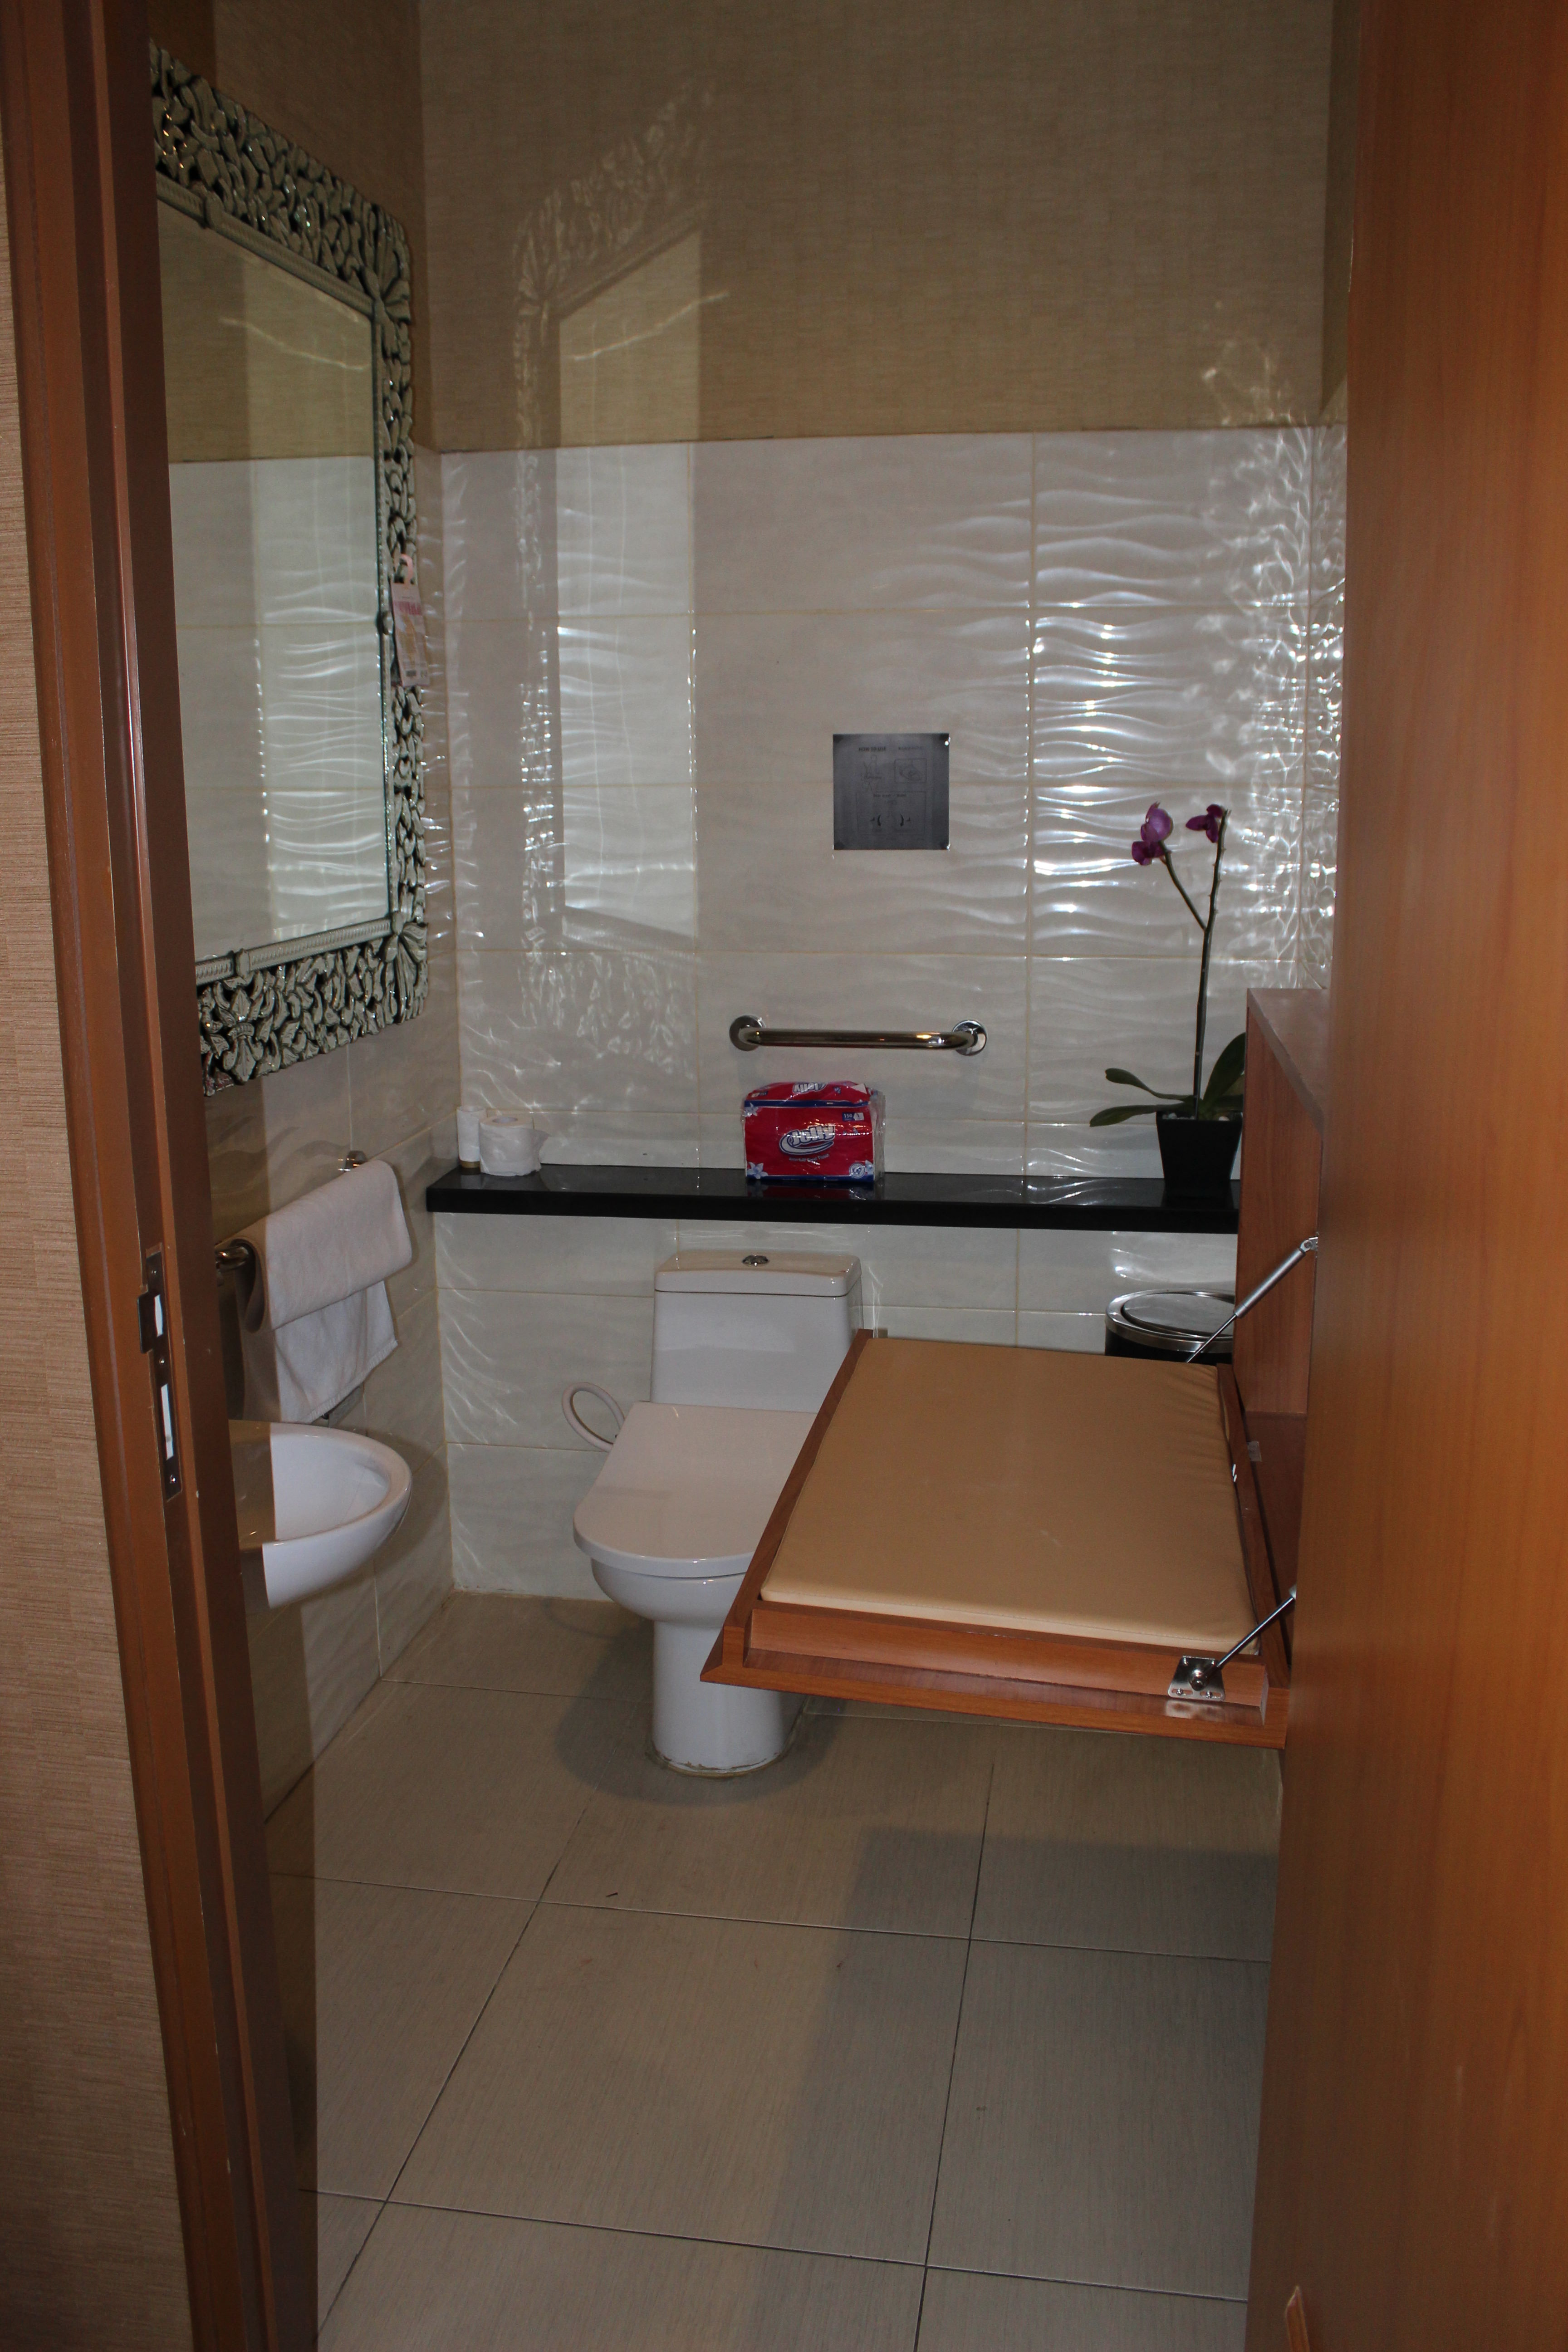 Bali Res Centre toilet for handicap & baby changing room - Bali Res ...